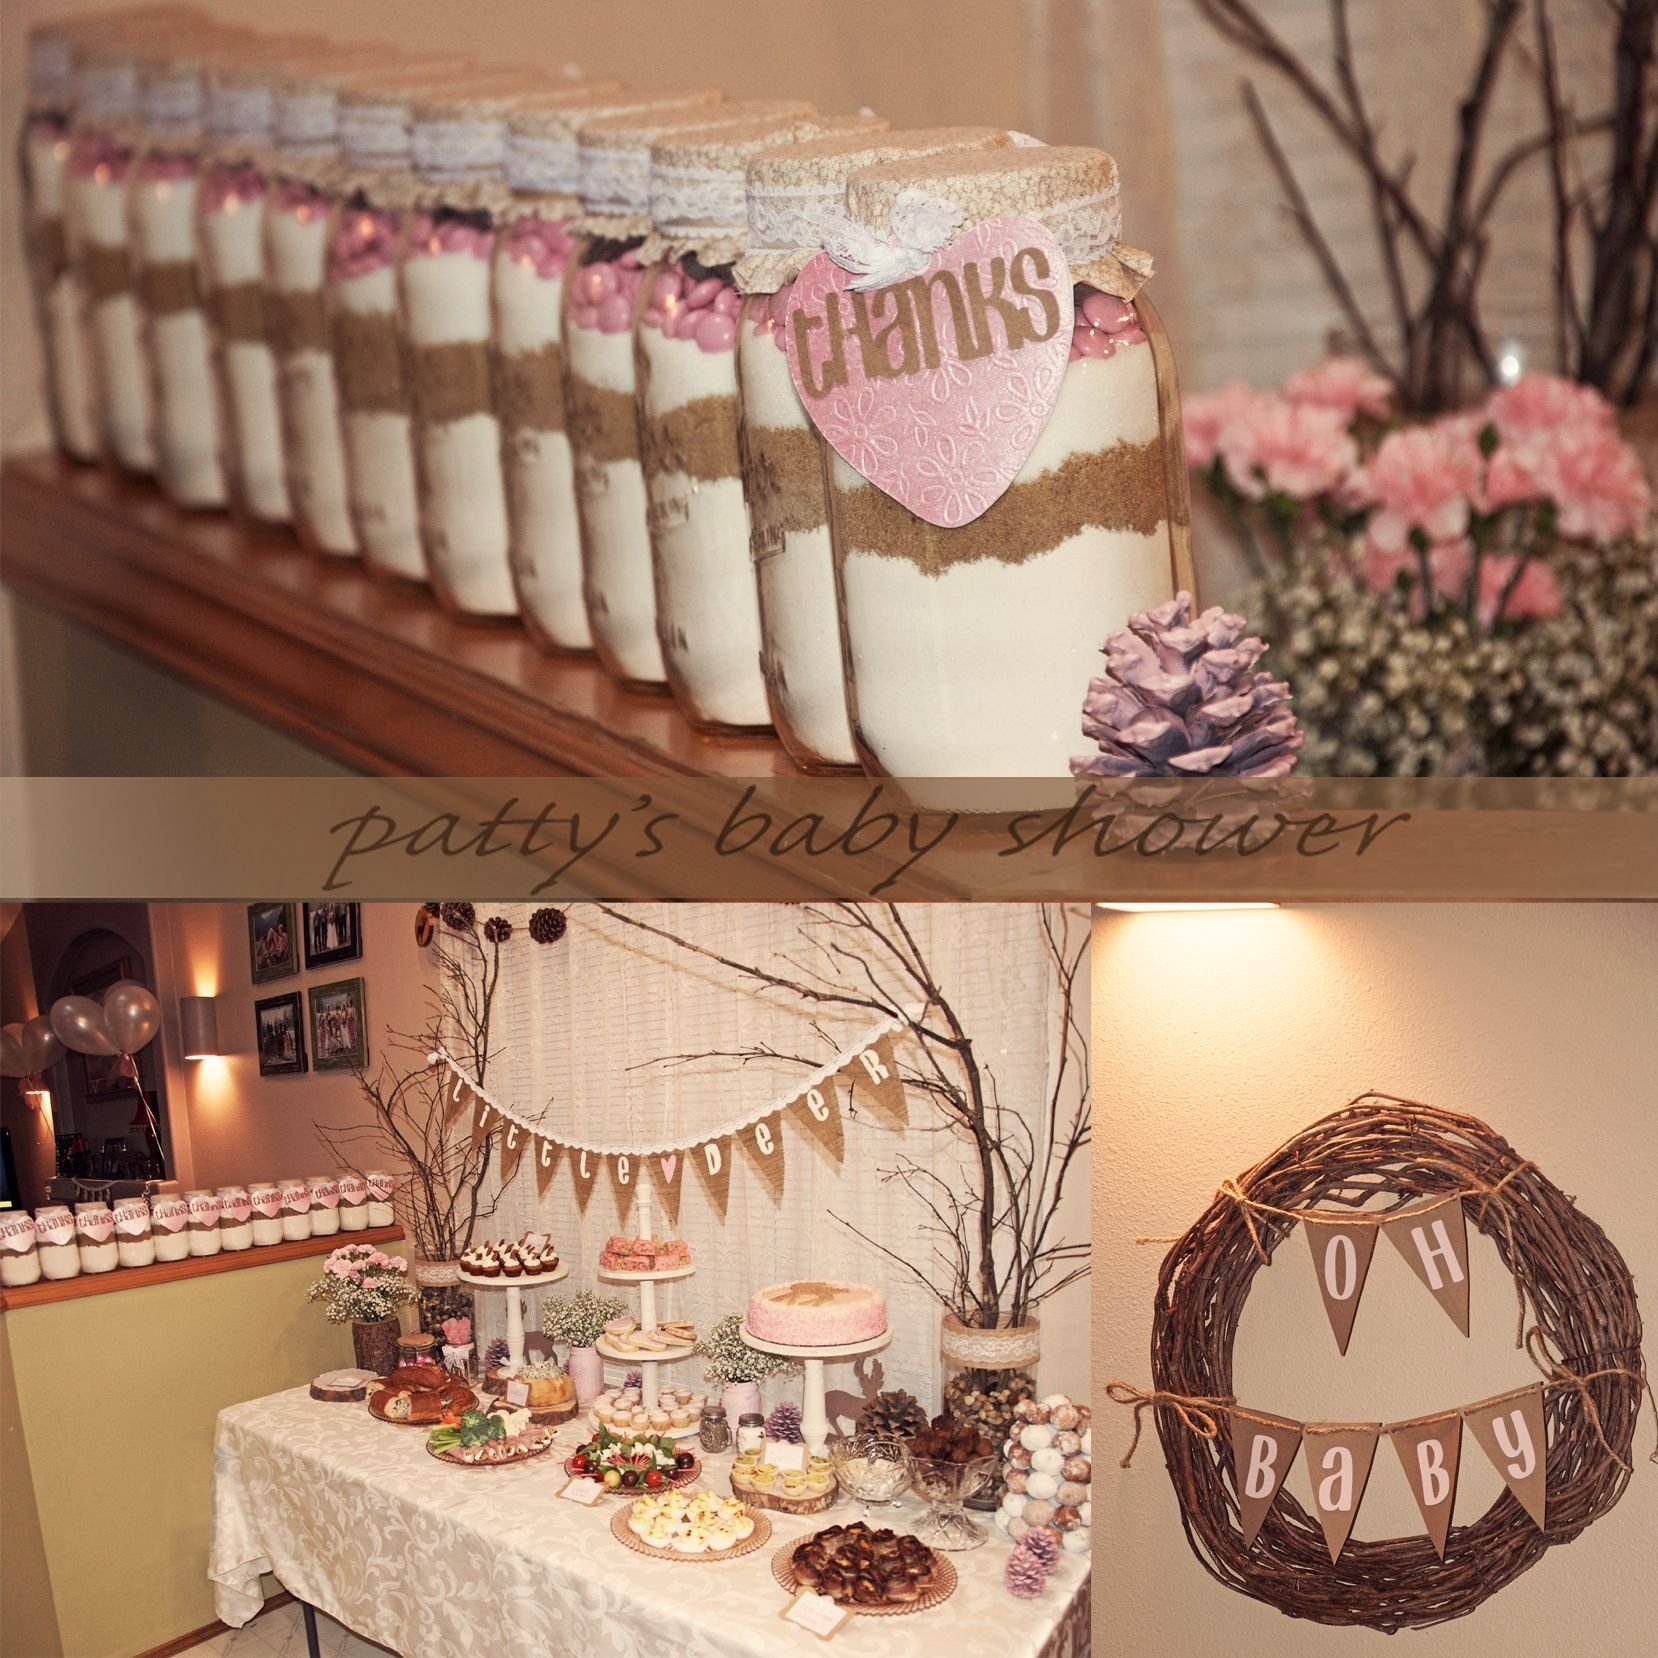 10 Unique Country Themed Baby Shower Ideas rustic baby shower deer theme country pink little deer woodland 2021